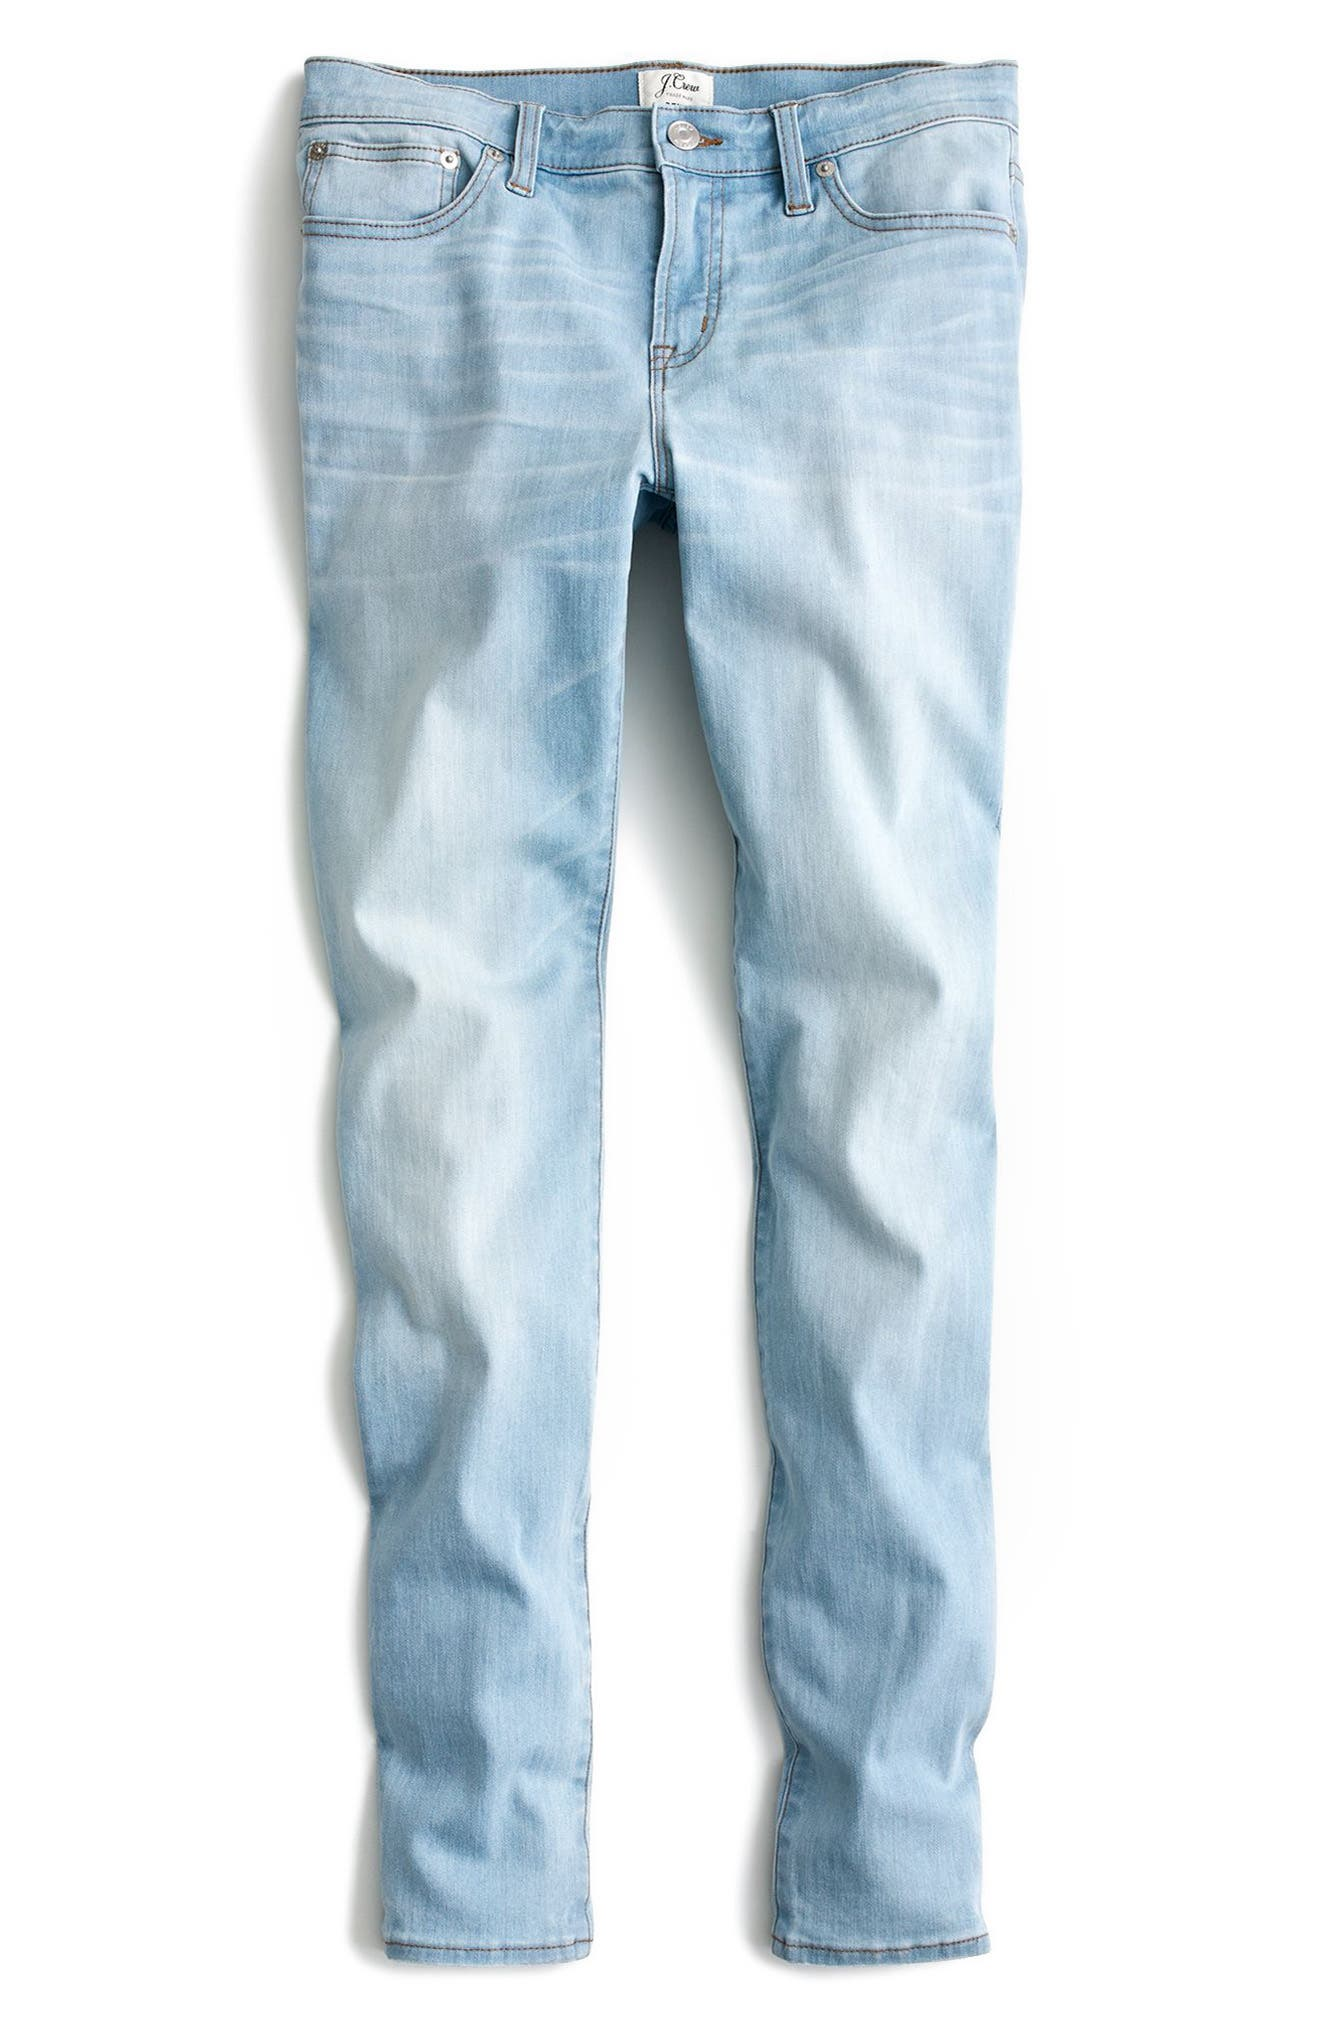 Toothpick Jeans,                             Alternate thumbnail 2, color,                             400